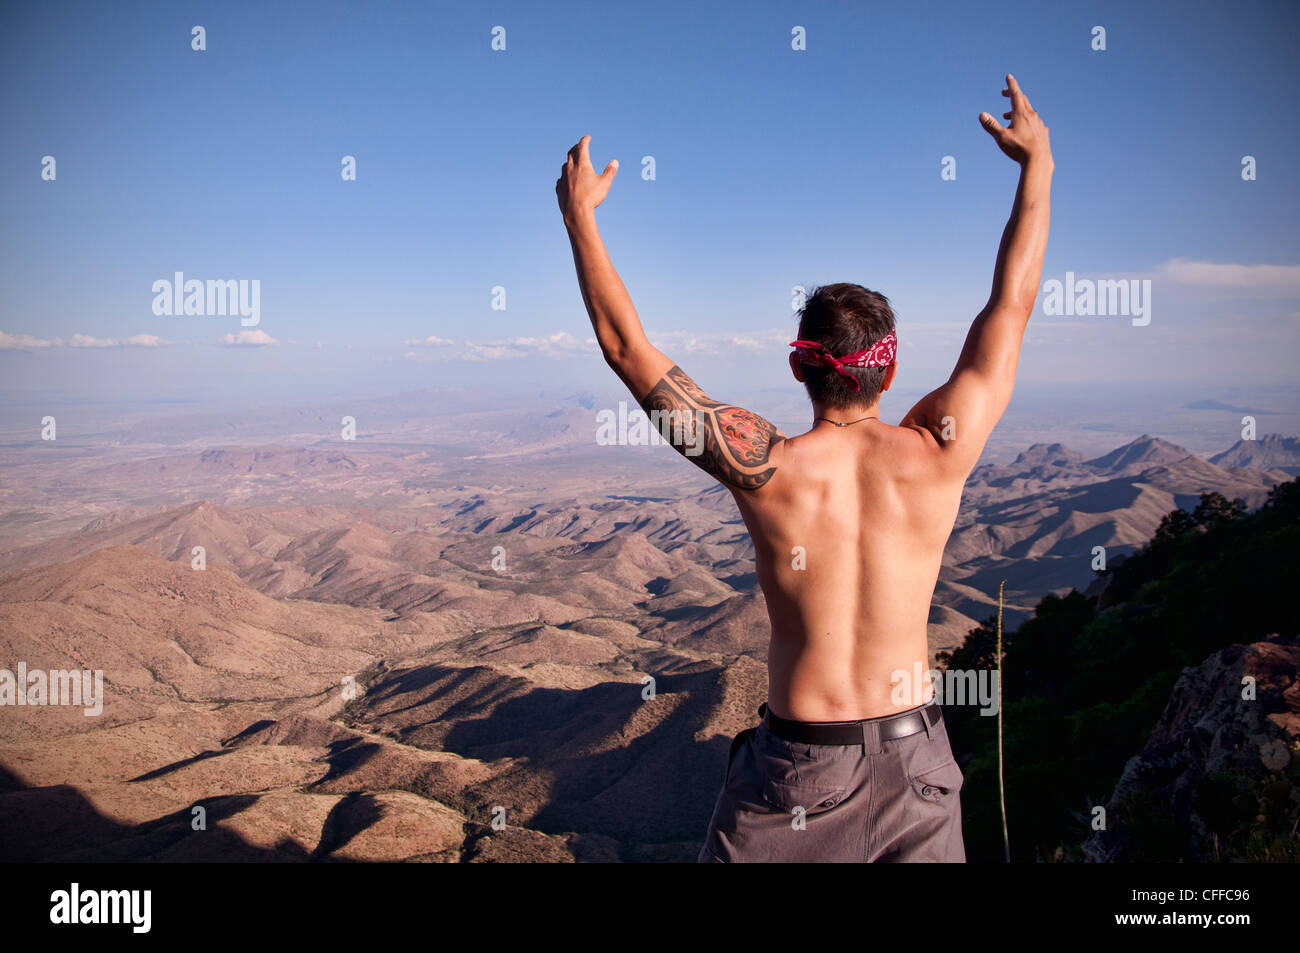 A young man celebrates at the top of The South Rim in Big Bend National Park. - Stock Image